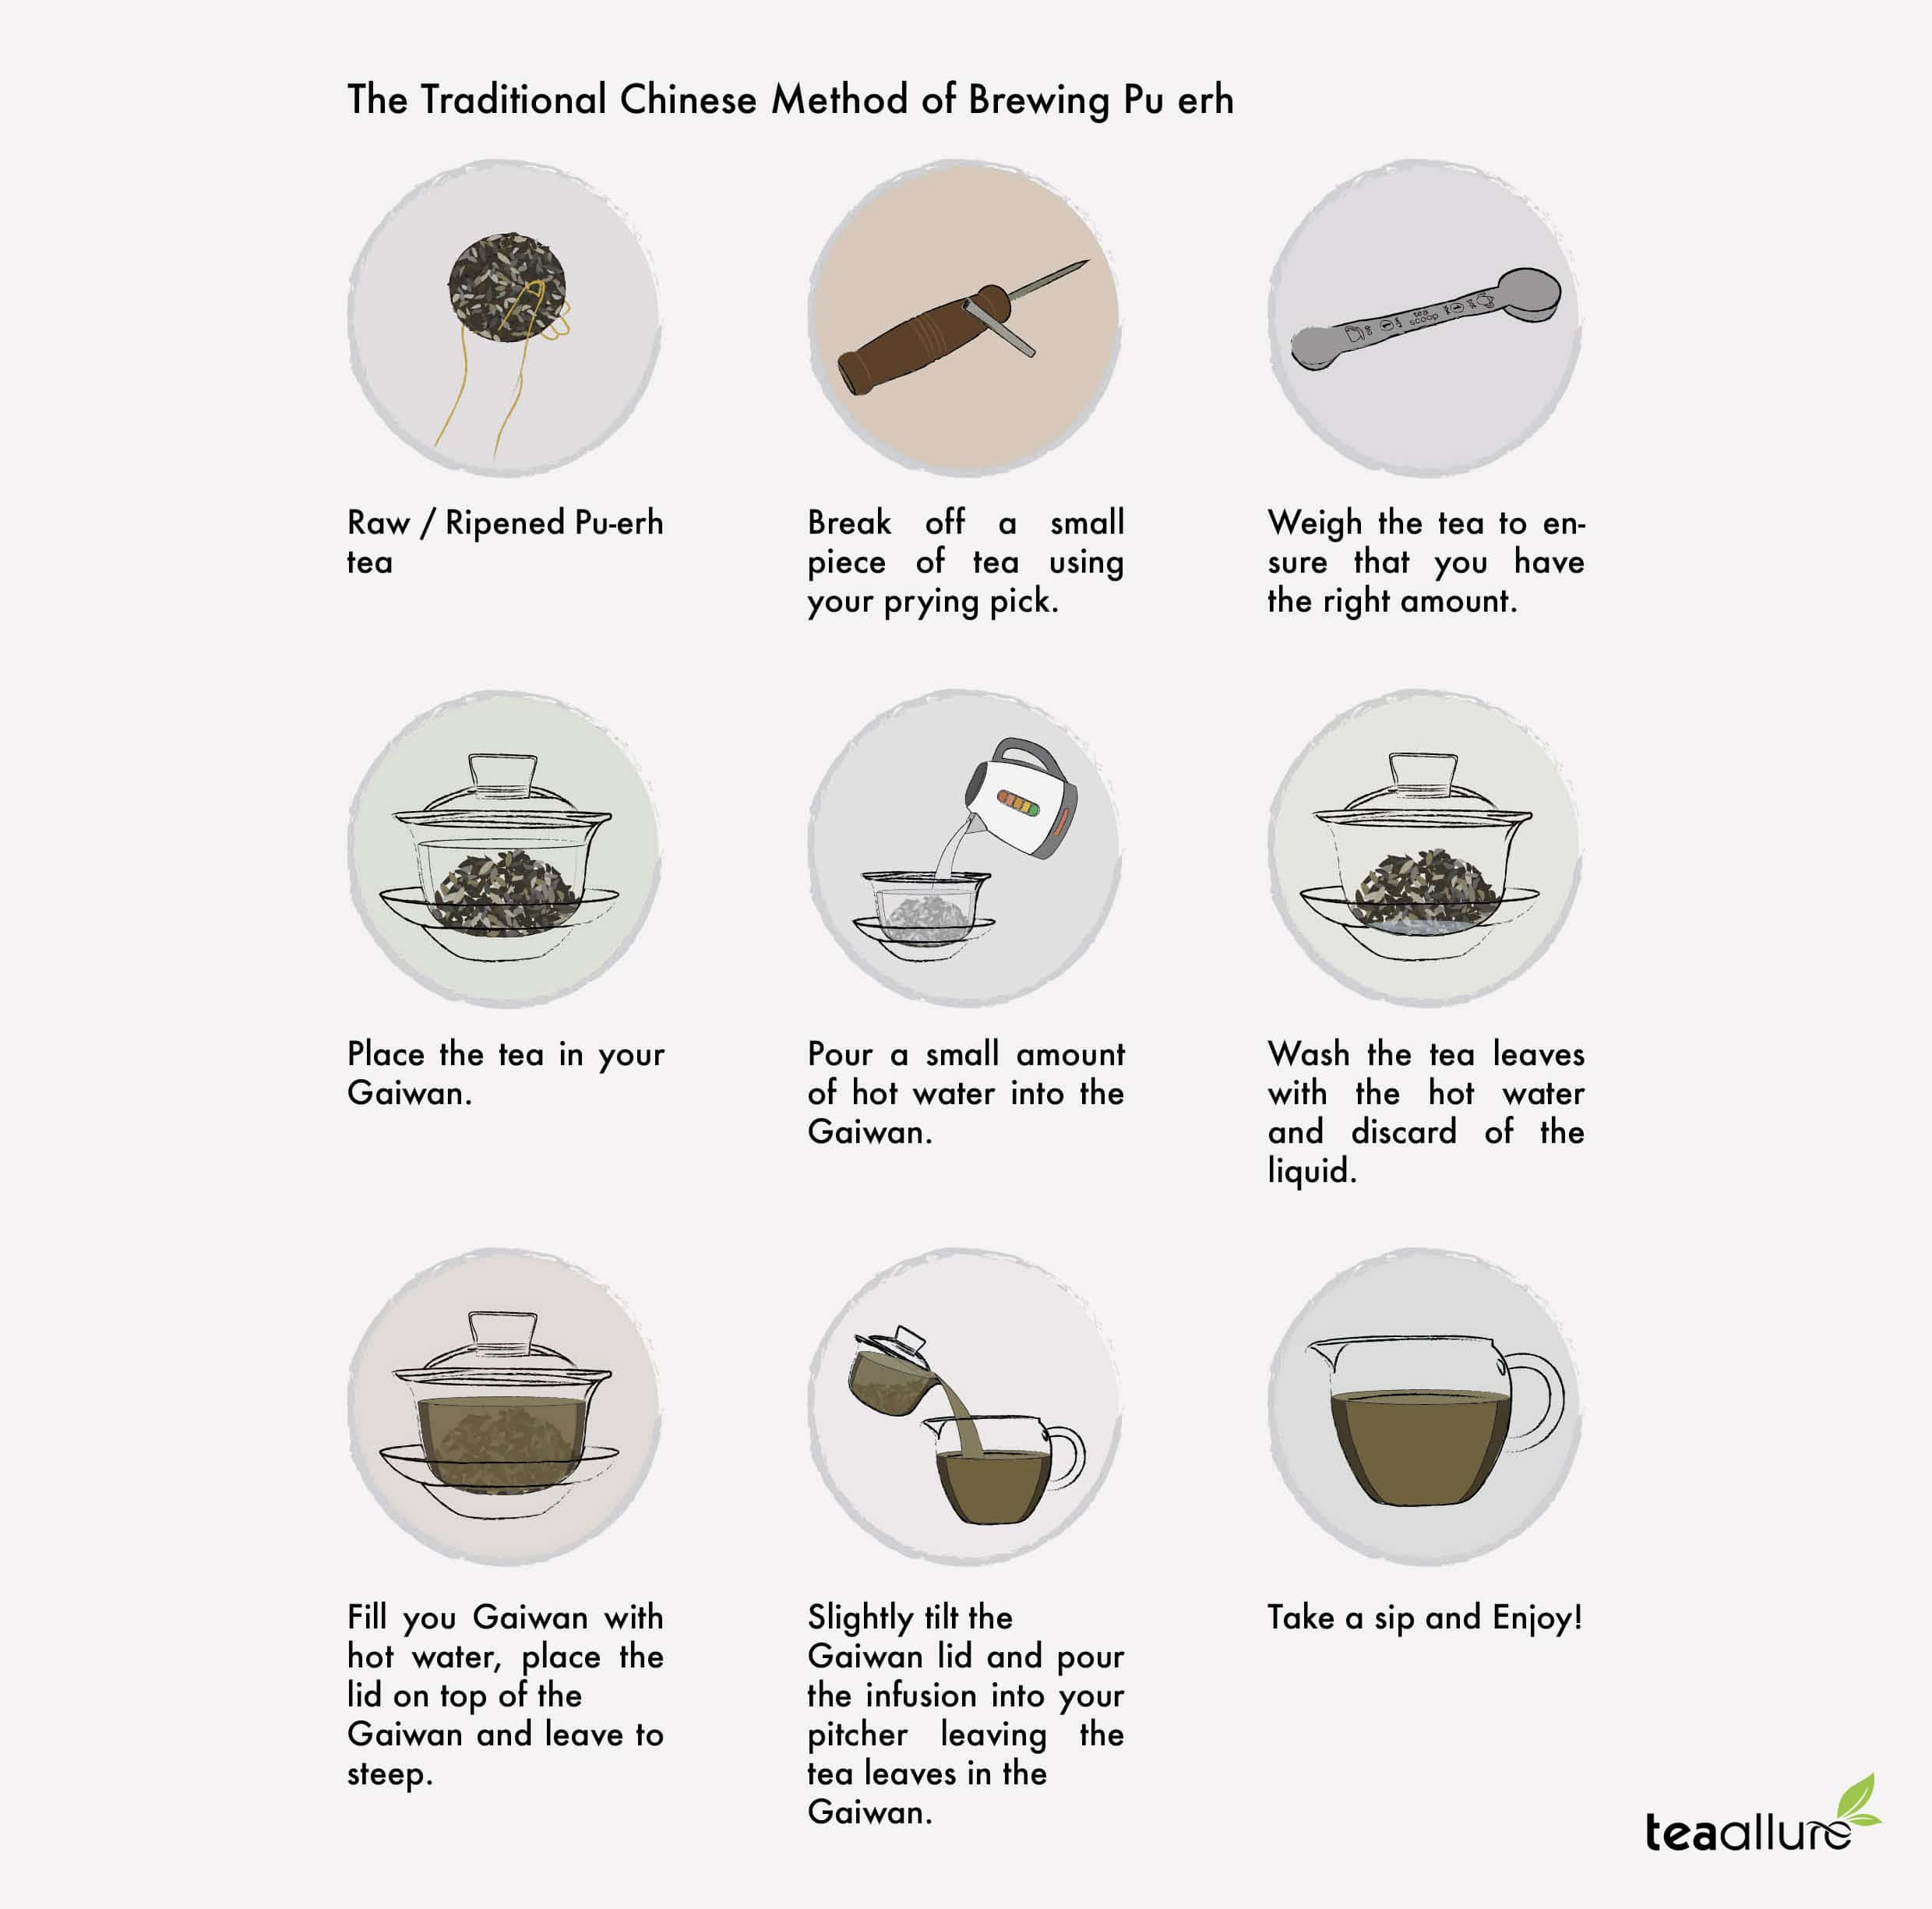 How to brew Pu-erh tea by the Eastern method